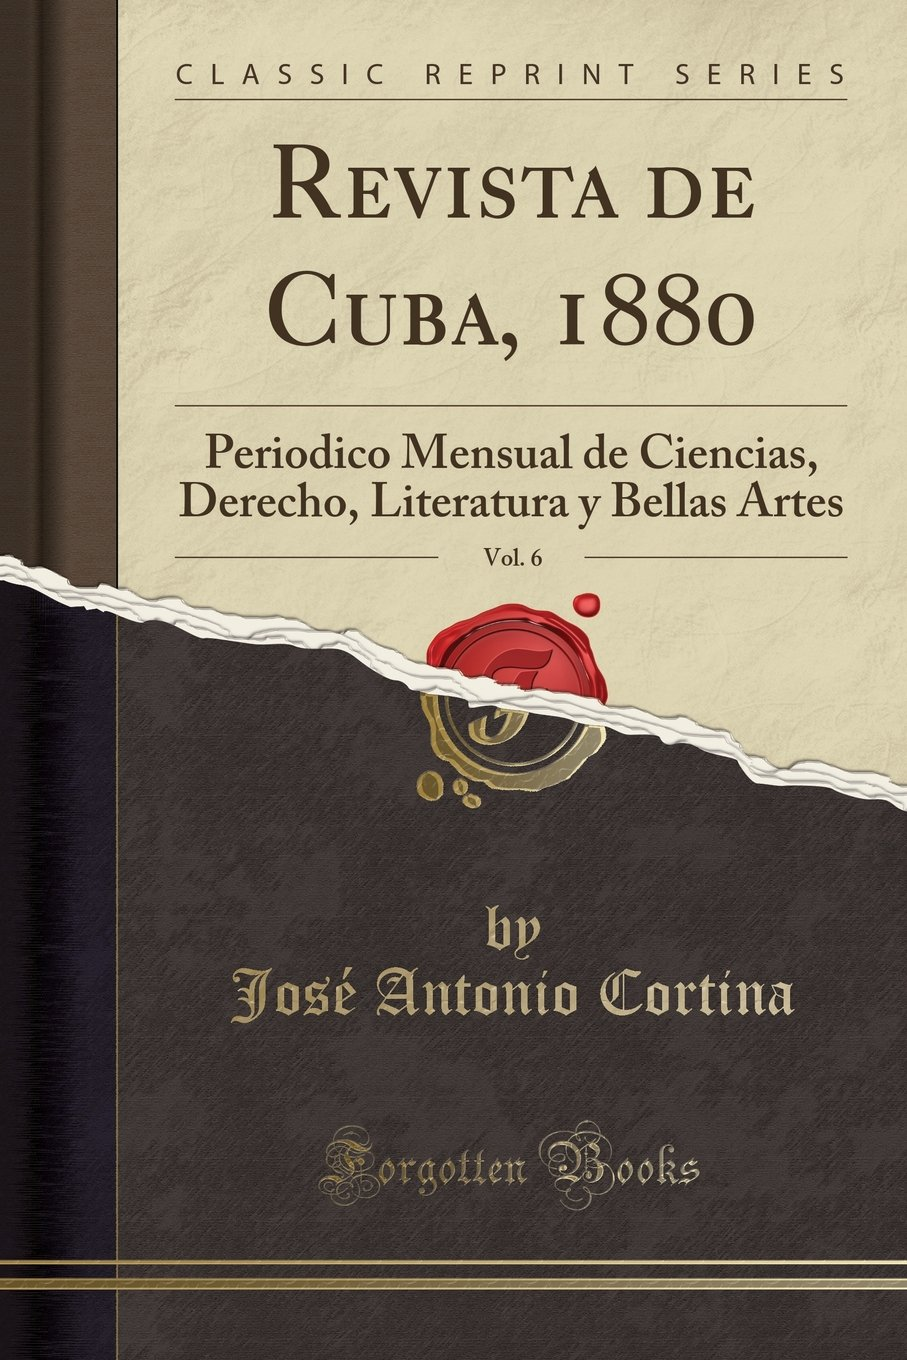 Download Revista de Cuba, 1880, Vol. 6: Periodico Mensual de Ciencias, Derecho, Literatura y Bellas Artes (Classic Reprint) (Spanish Edition) ebook